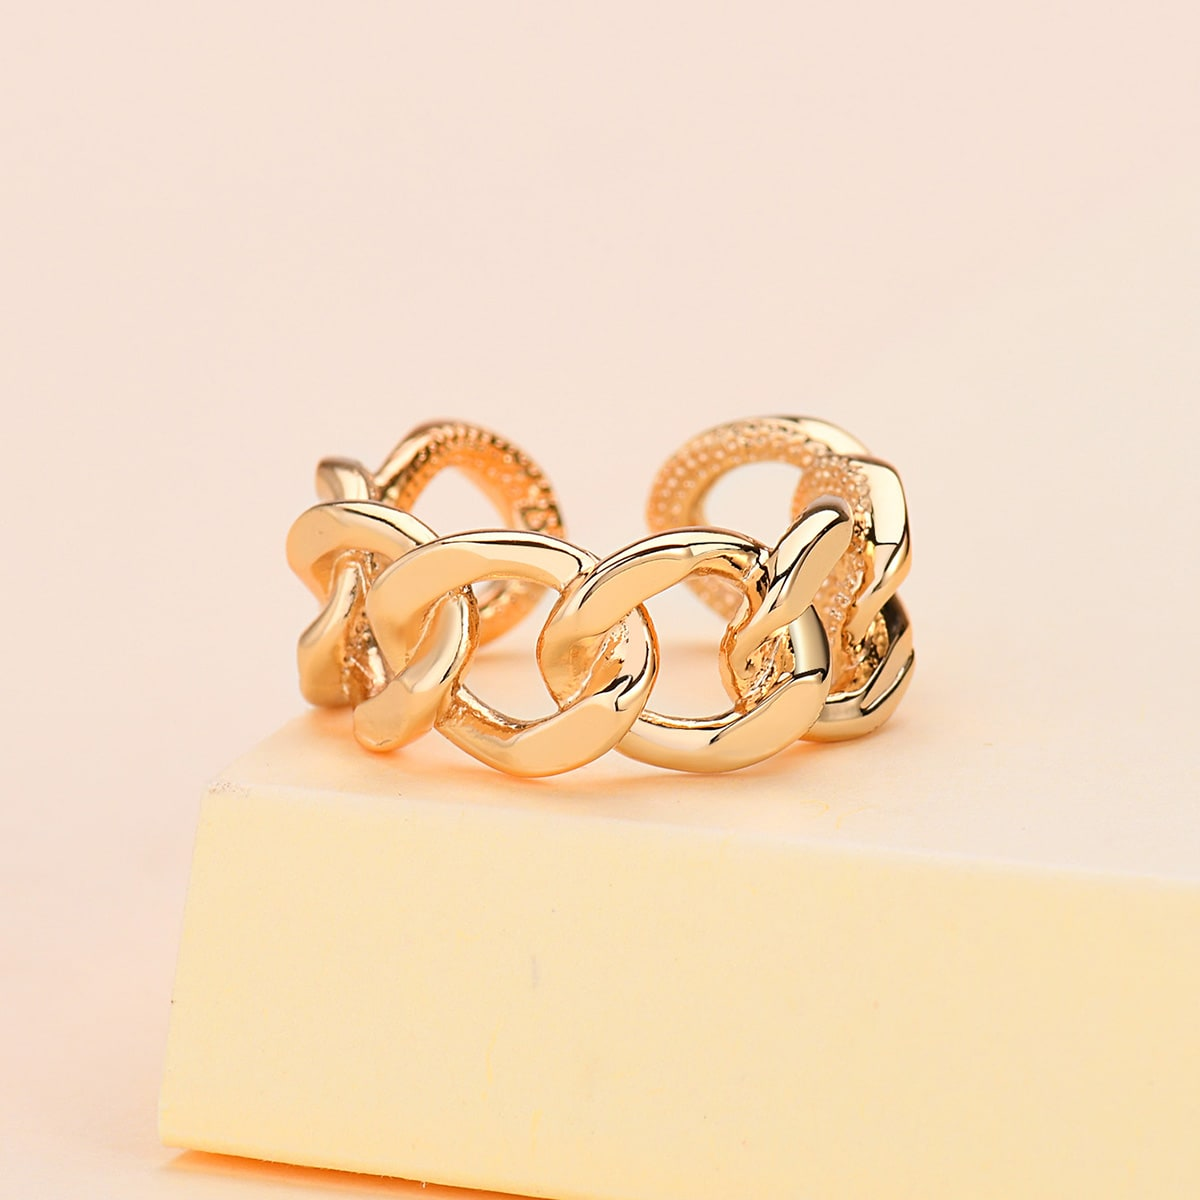 18K Gold Plated Chain Design Ring